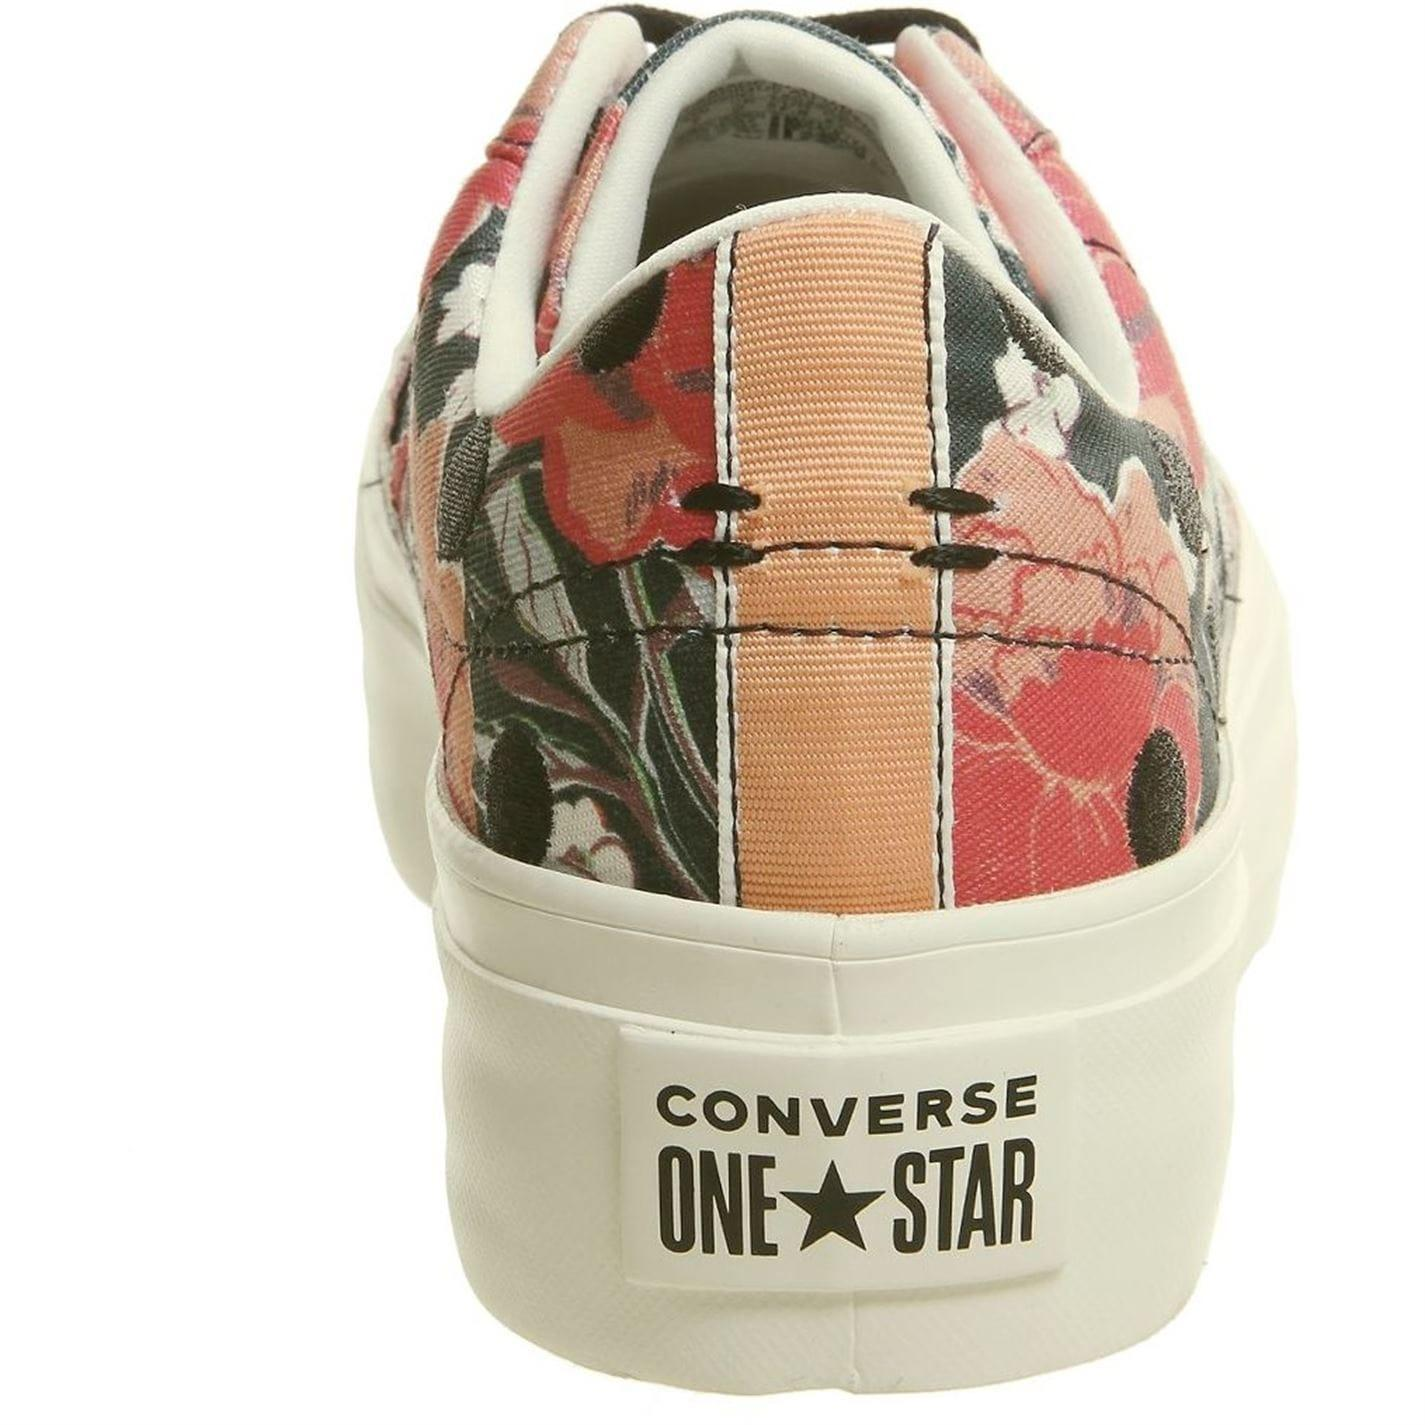 Converse Rubber One Star Trainers in Black